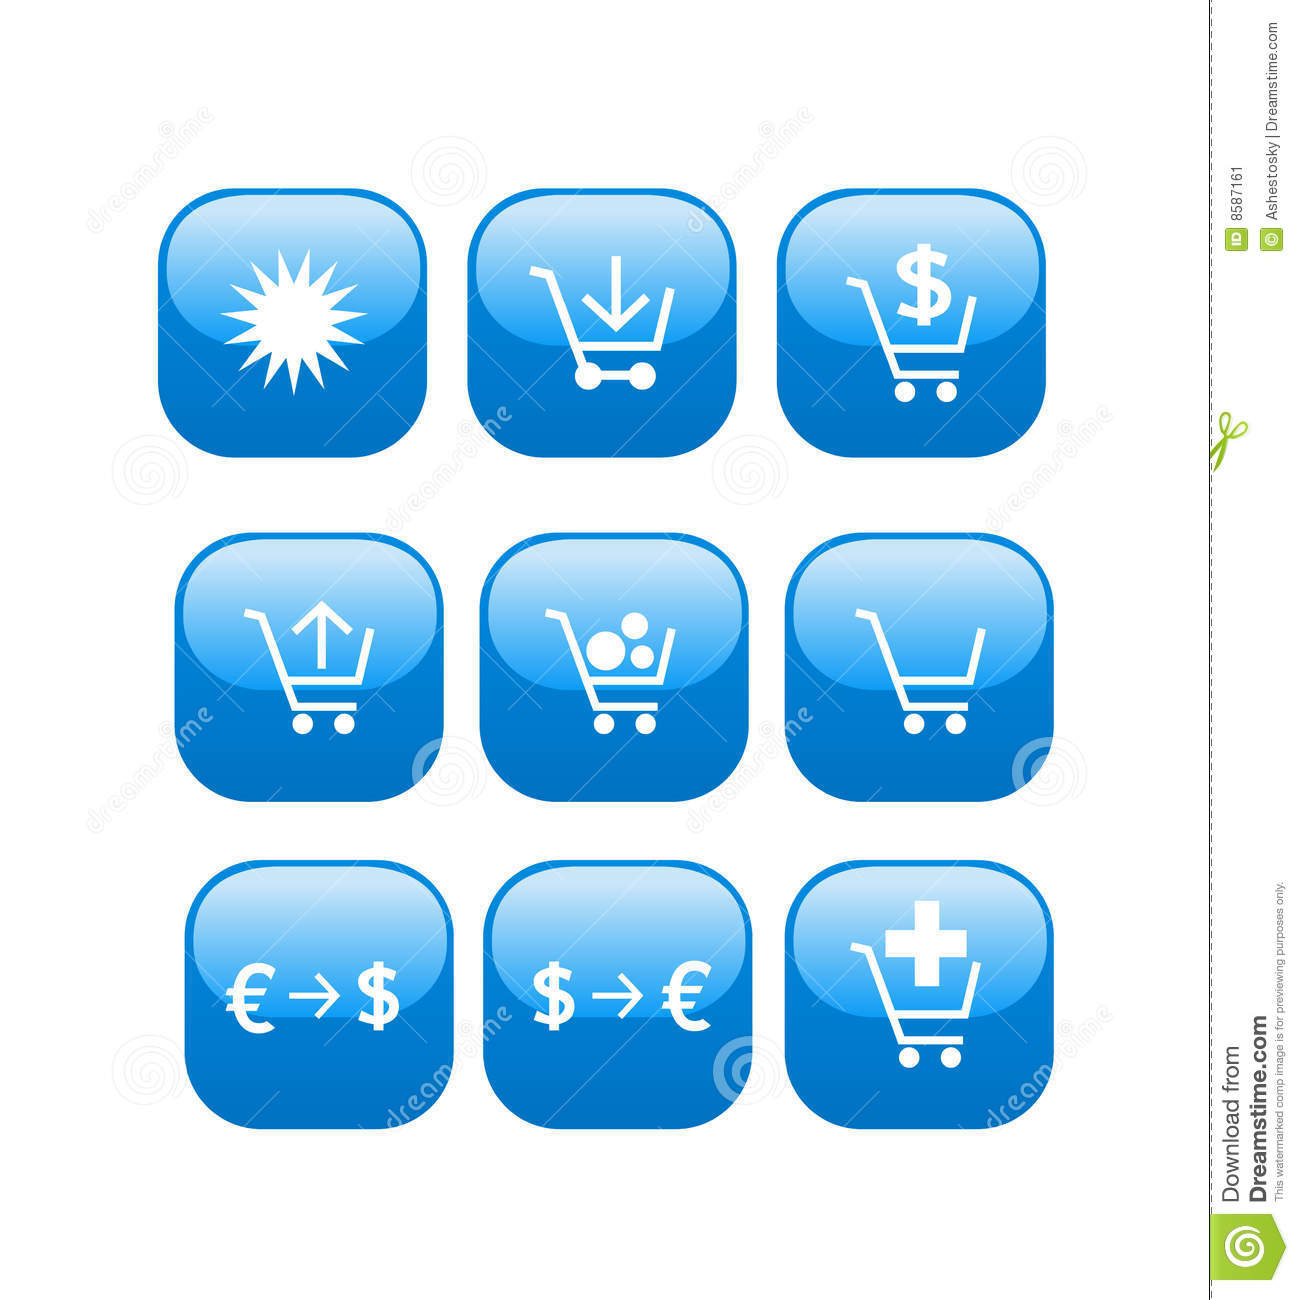 Stock Image: Online store web shop icons: www.dreamstime.com/stock-image-online-store-web-shop-icons...